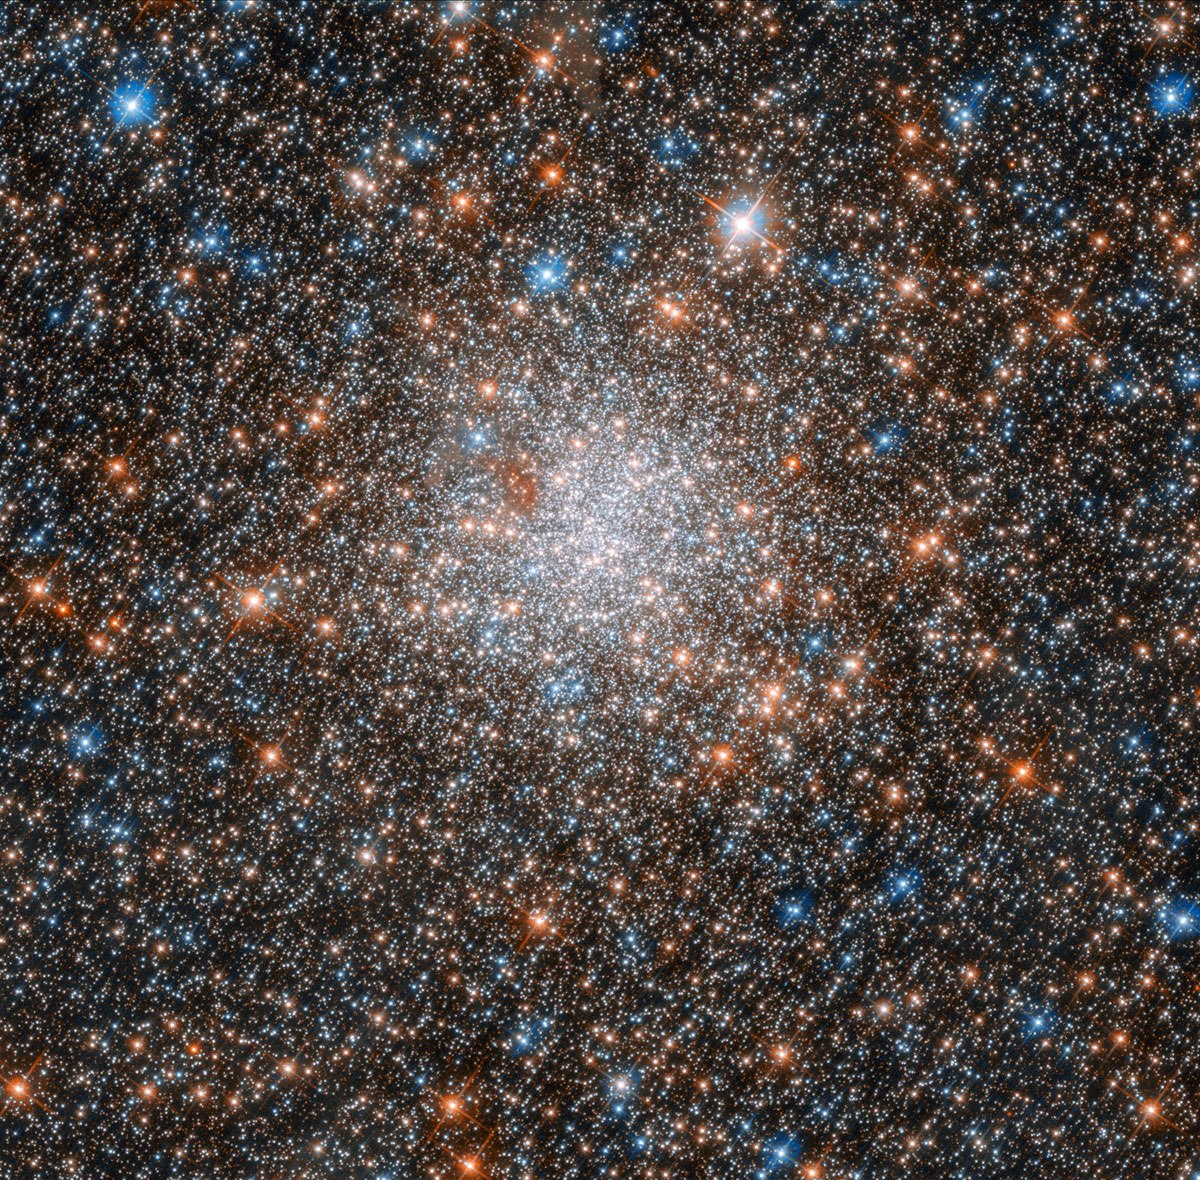 Hubble Globular Star Cluster NGC 1898